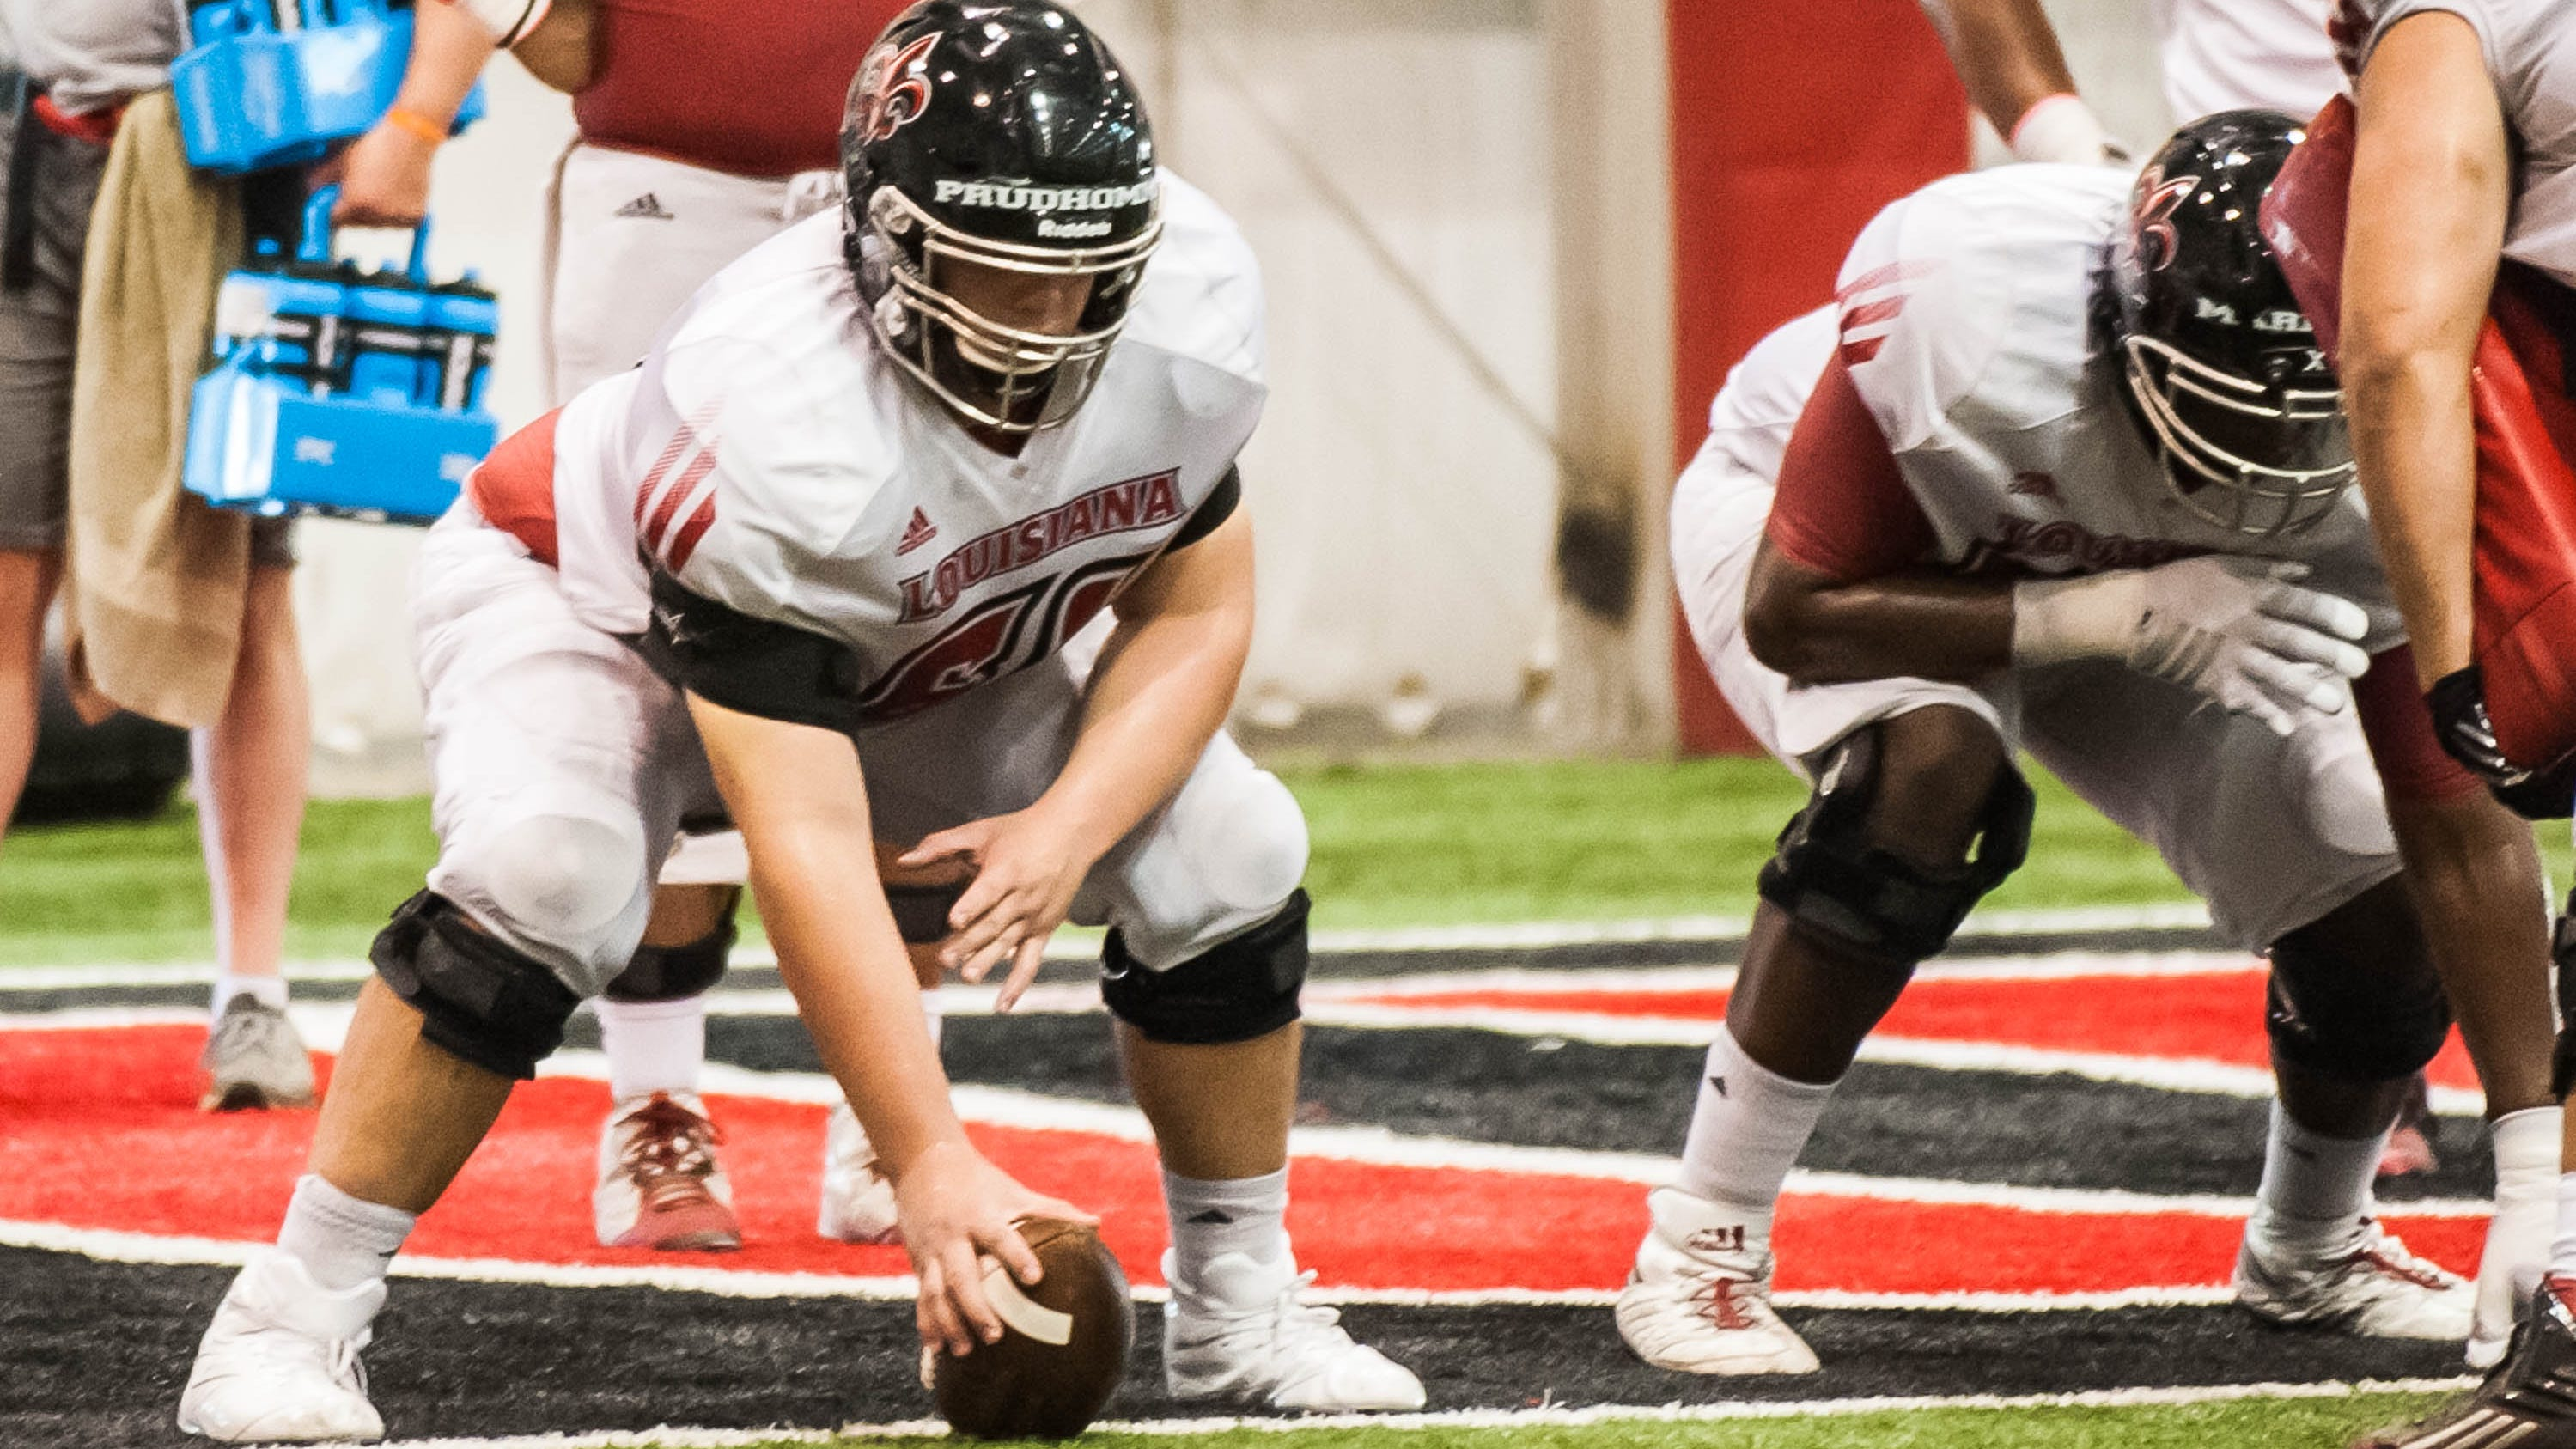 Cole Prudhomme ULL Ragin Cajun football practice on August 13, 2018./Buddy Delahousssaye Special to the Advertiser